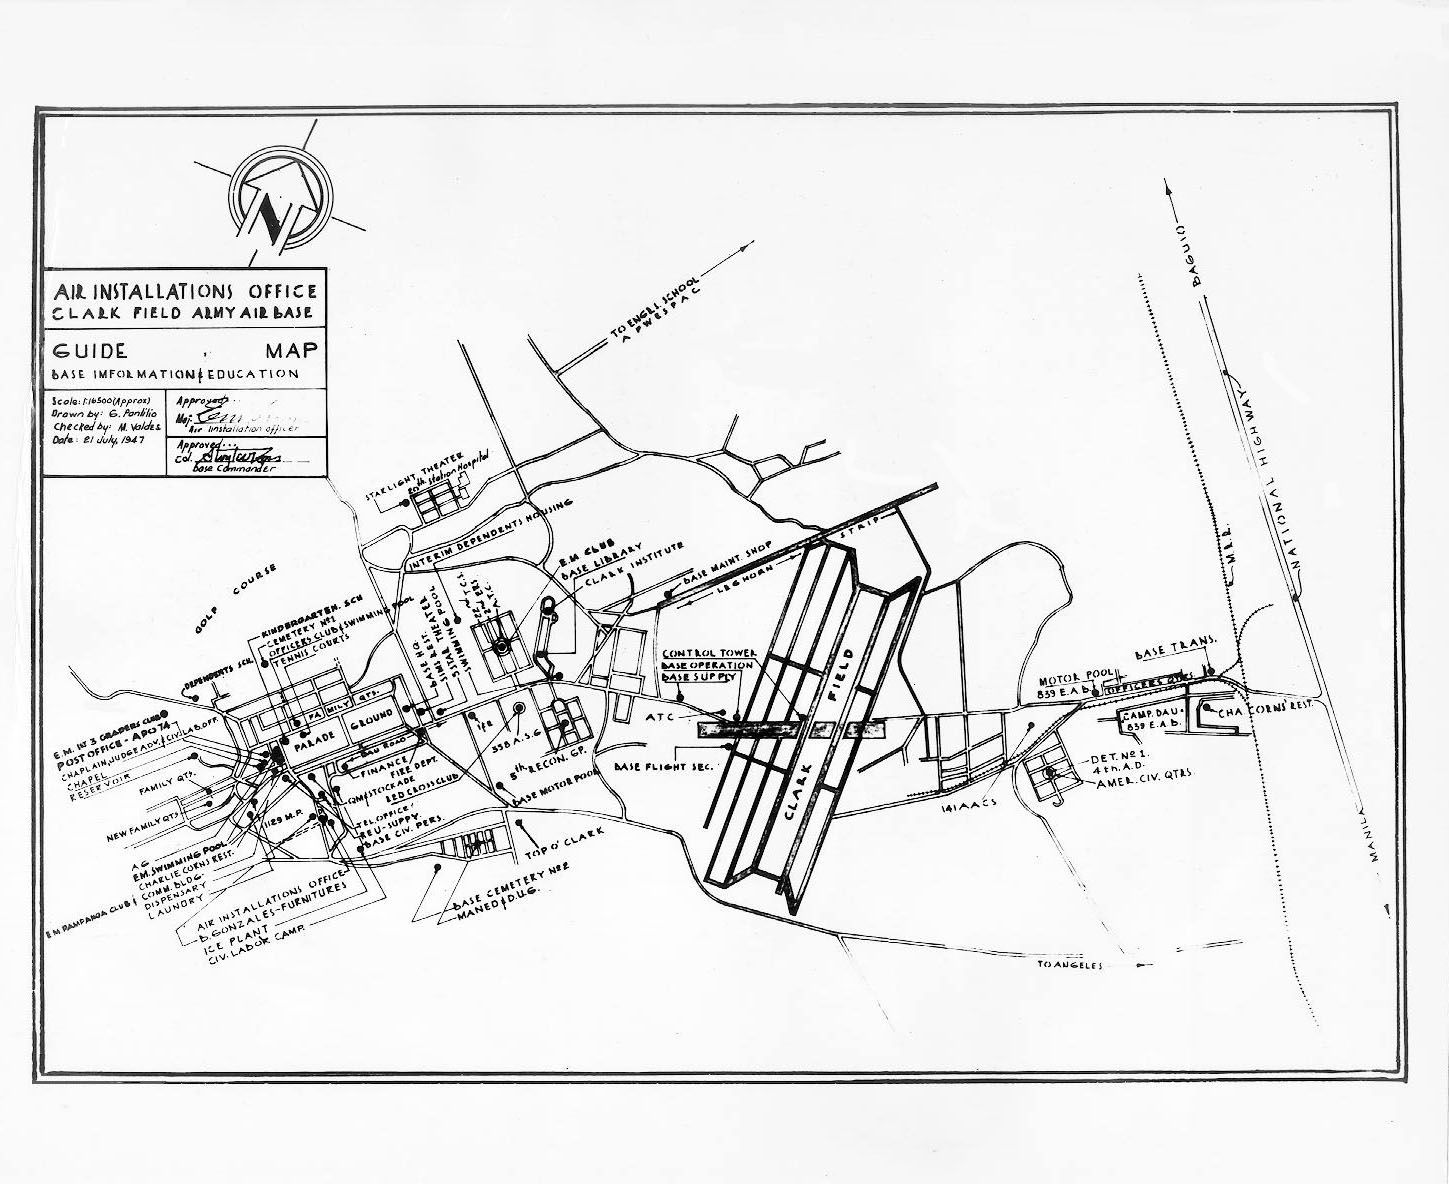 Map Of Clark Army Air Base From 1947